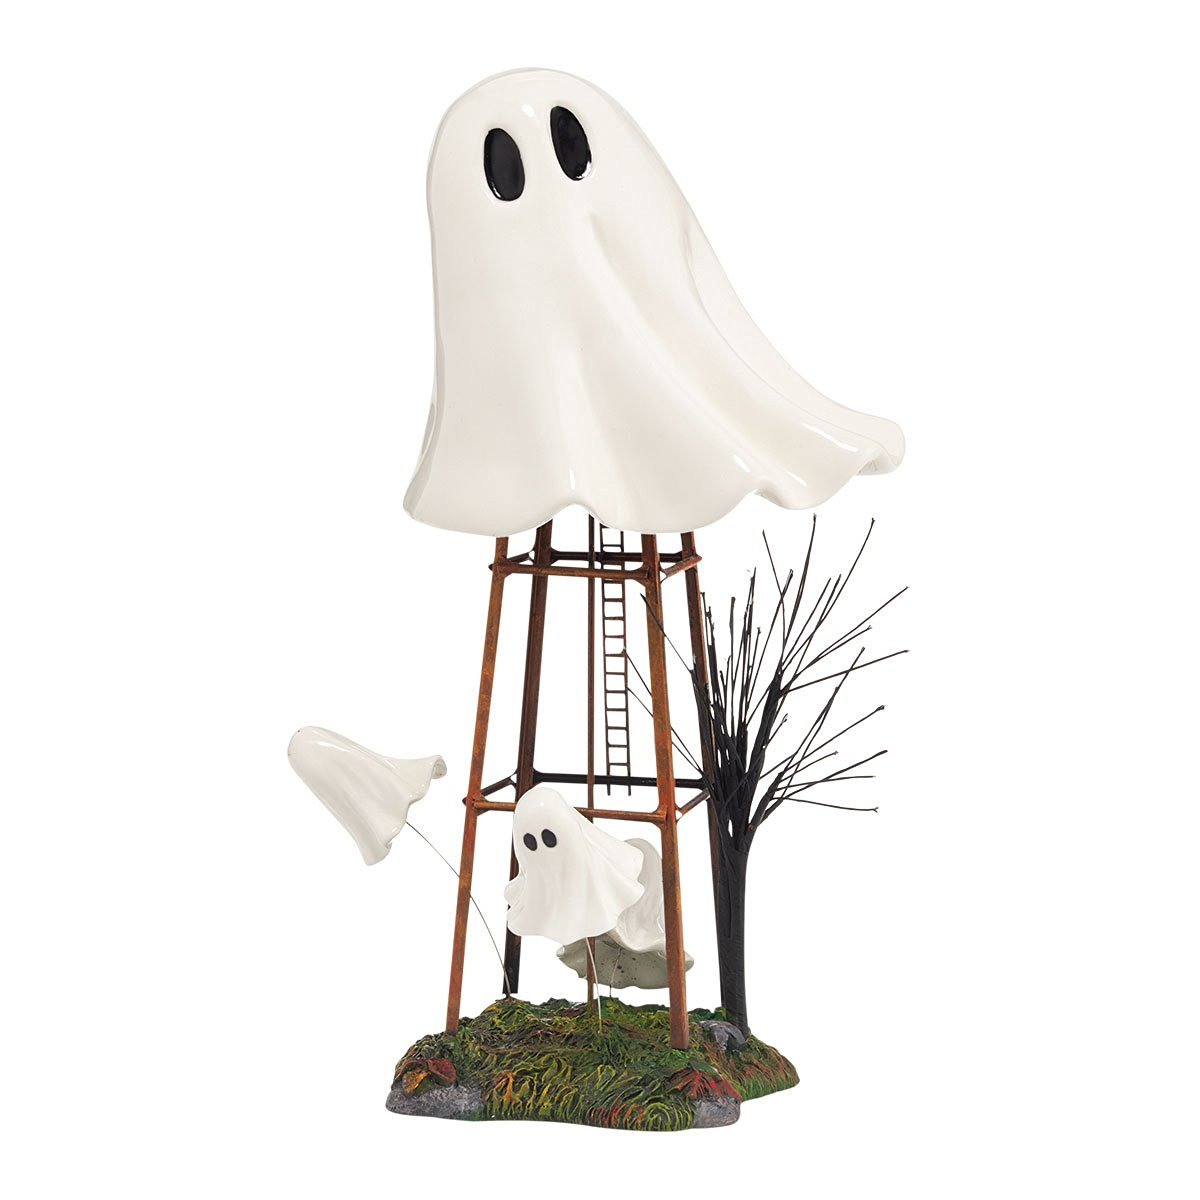 Department 56 Halloween Accessories Village Haunted Water Tower Accessory, 10.83-Inch